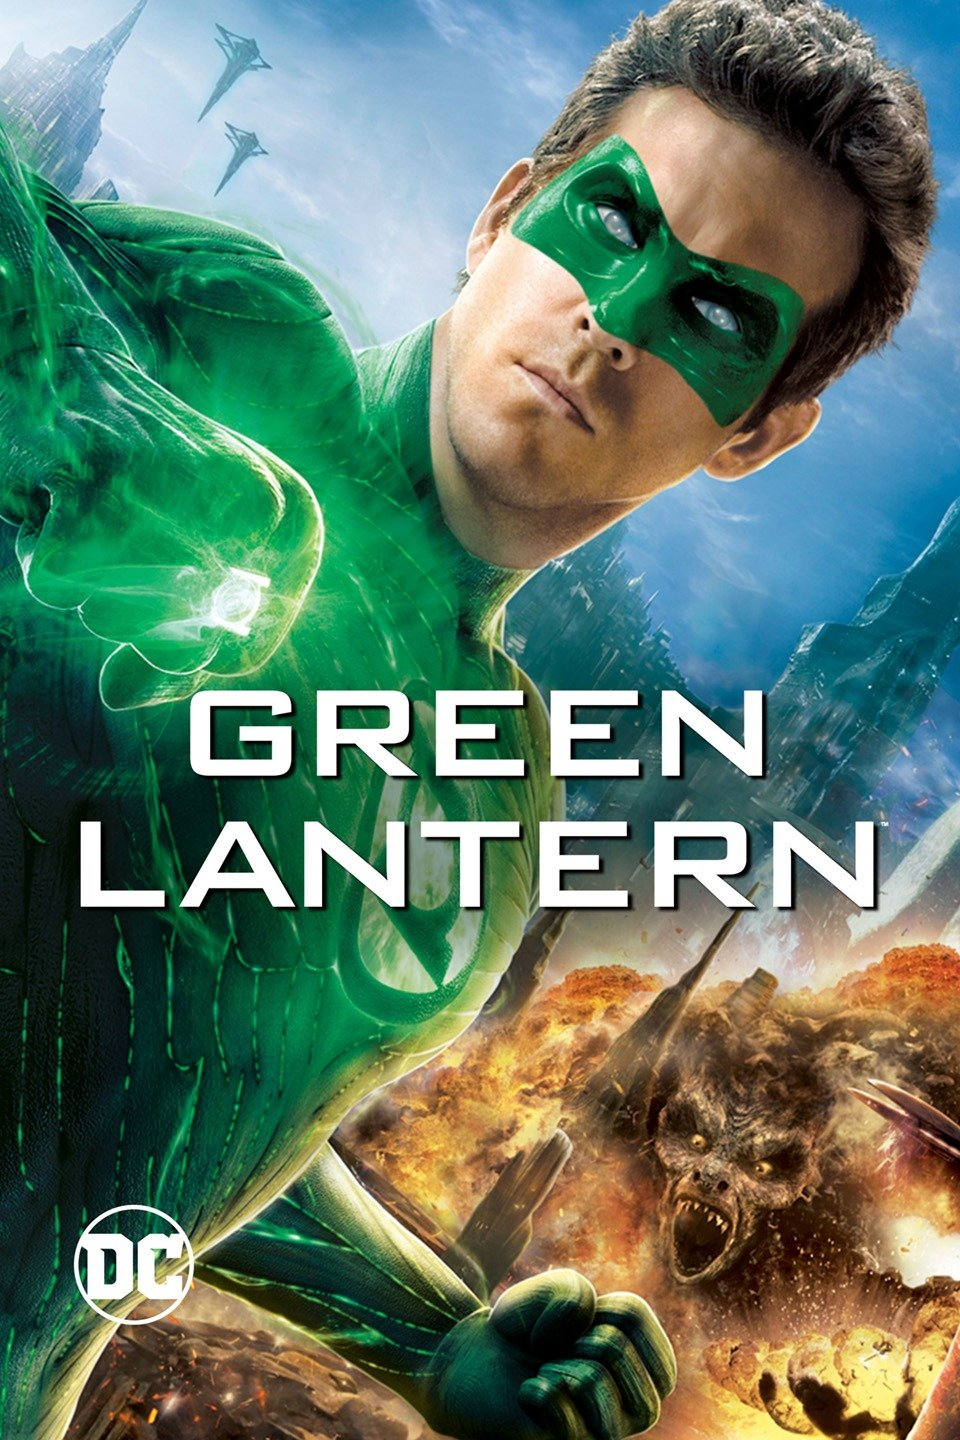 Green Lantern (2011) Dual Audio 720p BluRay x264 [Hindi – English] ESubs